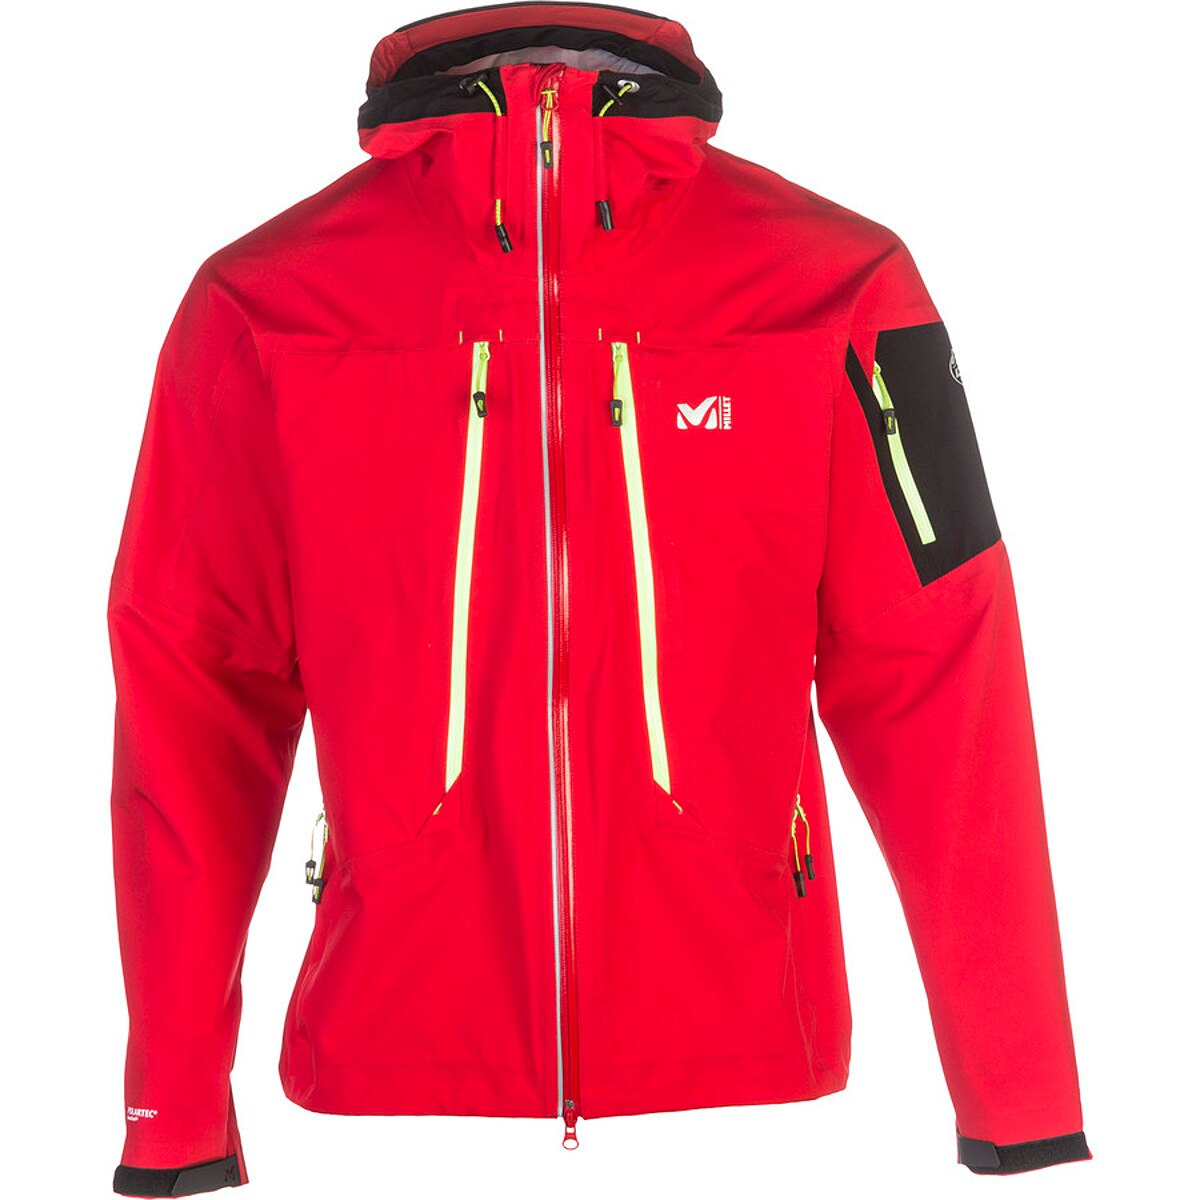 Ski Jackets on sale from the best brands in outerwear. These ski jackets offer skiers a variety of weather protection with waterproof fabric that's still breathable, down or synthetic insulation and hand warmer pockets all at an affordable price.